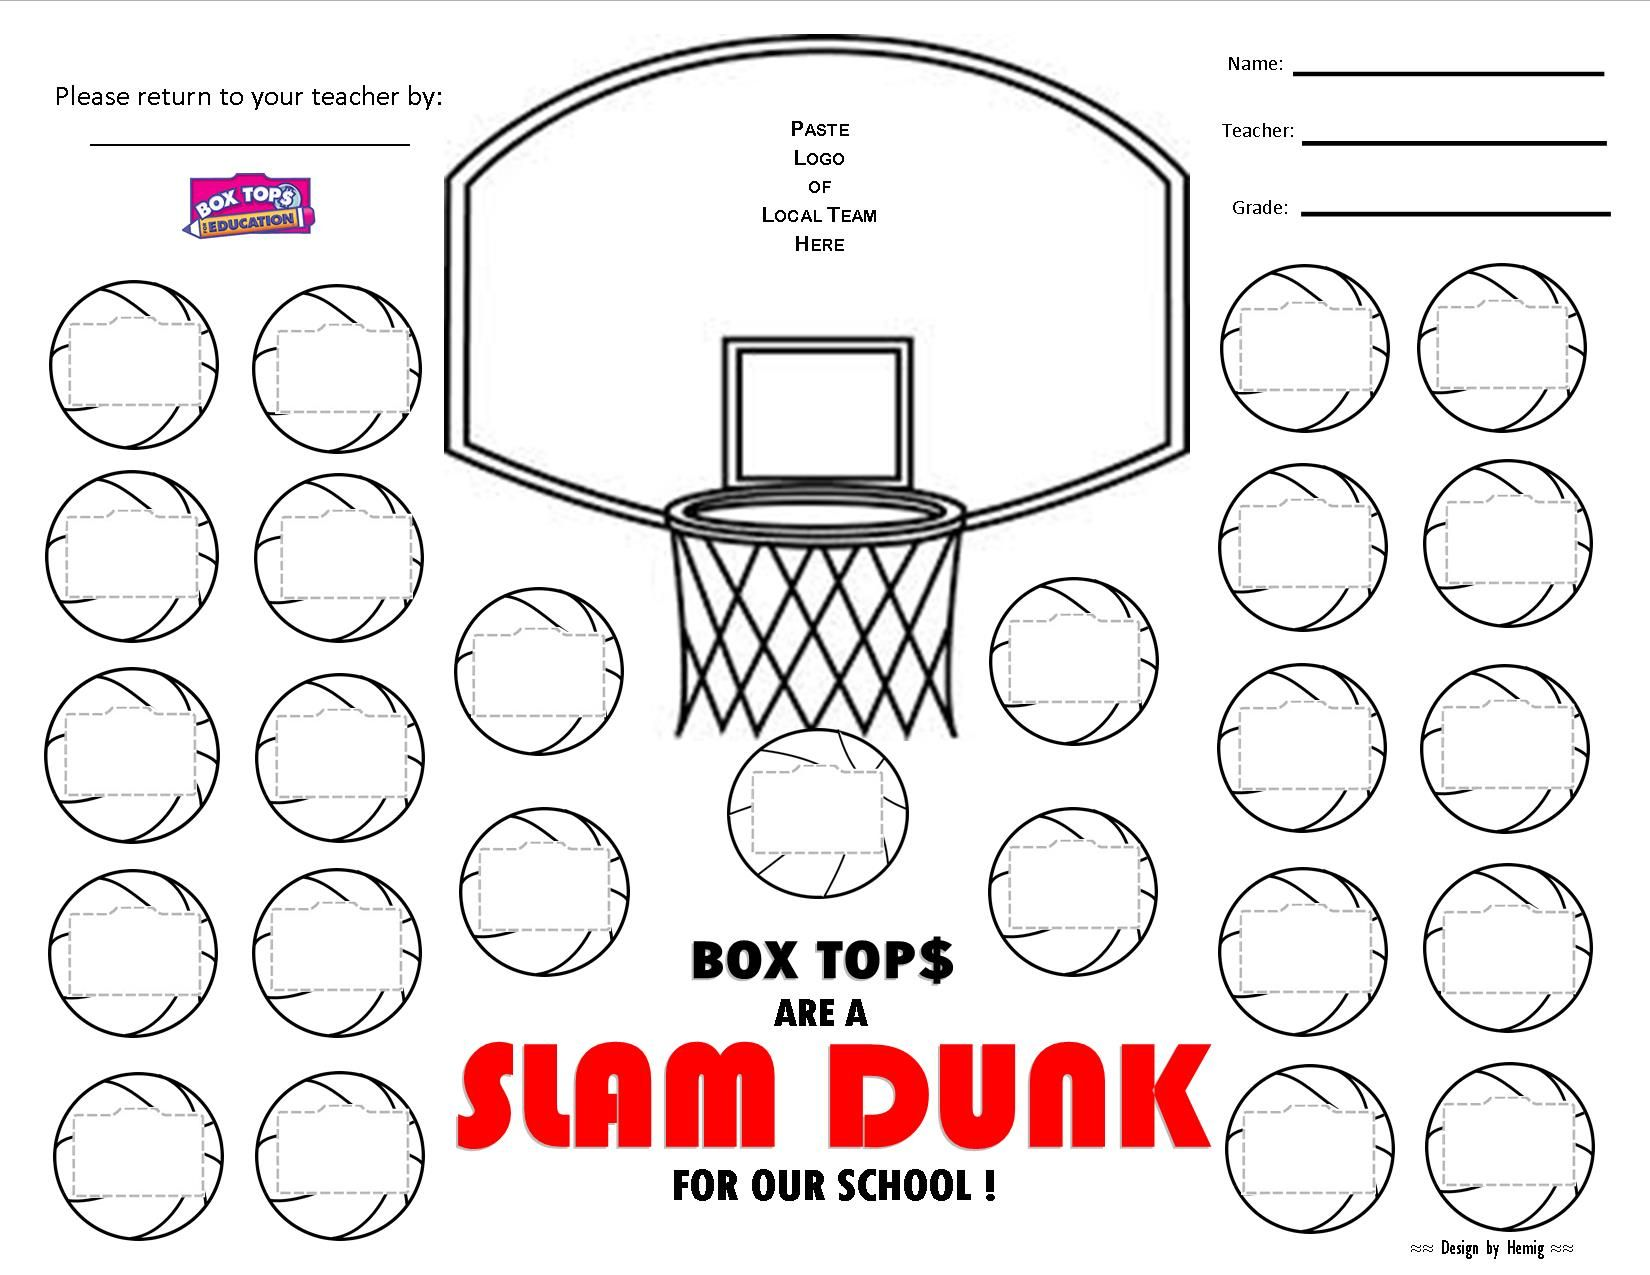 Box Tops Collection Sheet Box Tops Are A Slam Dunk For Our School Basketball Theme